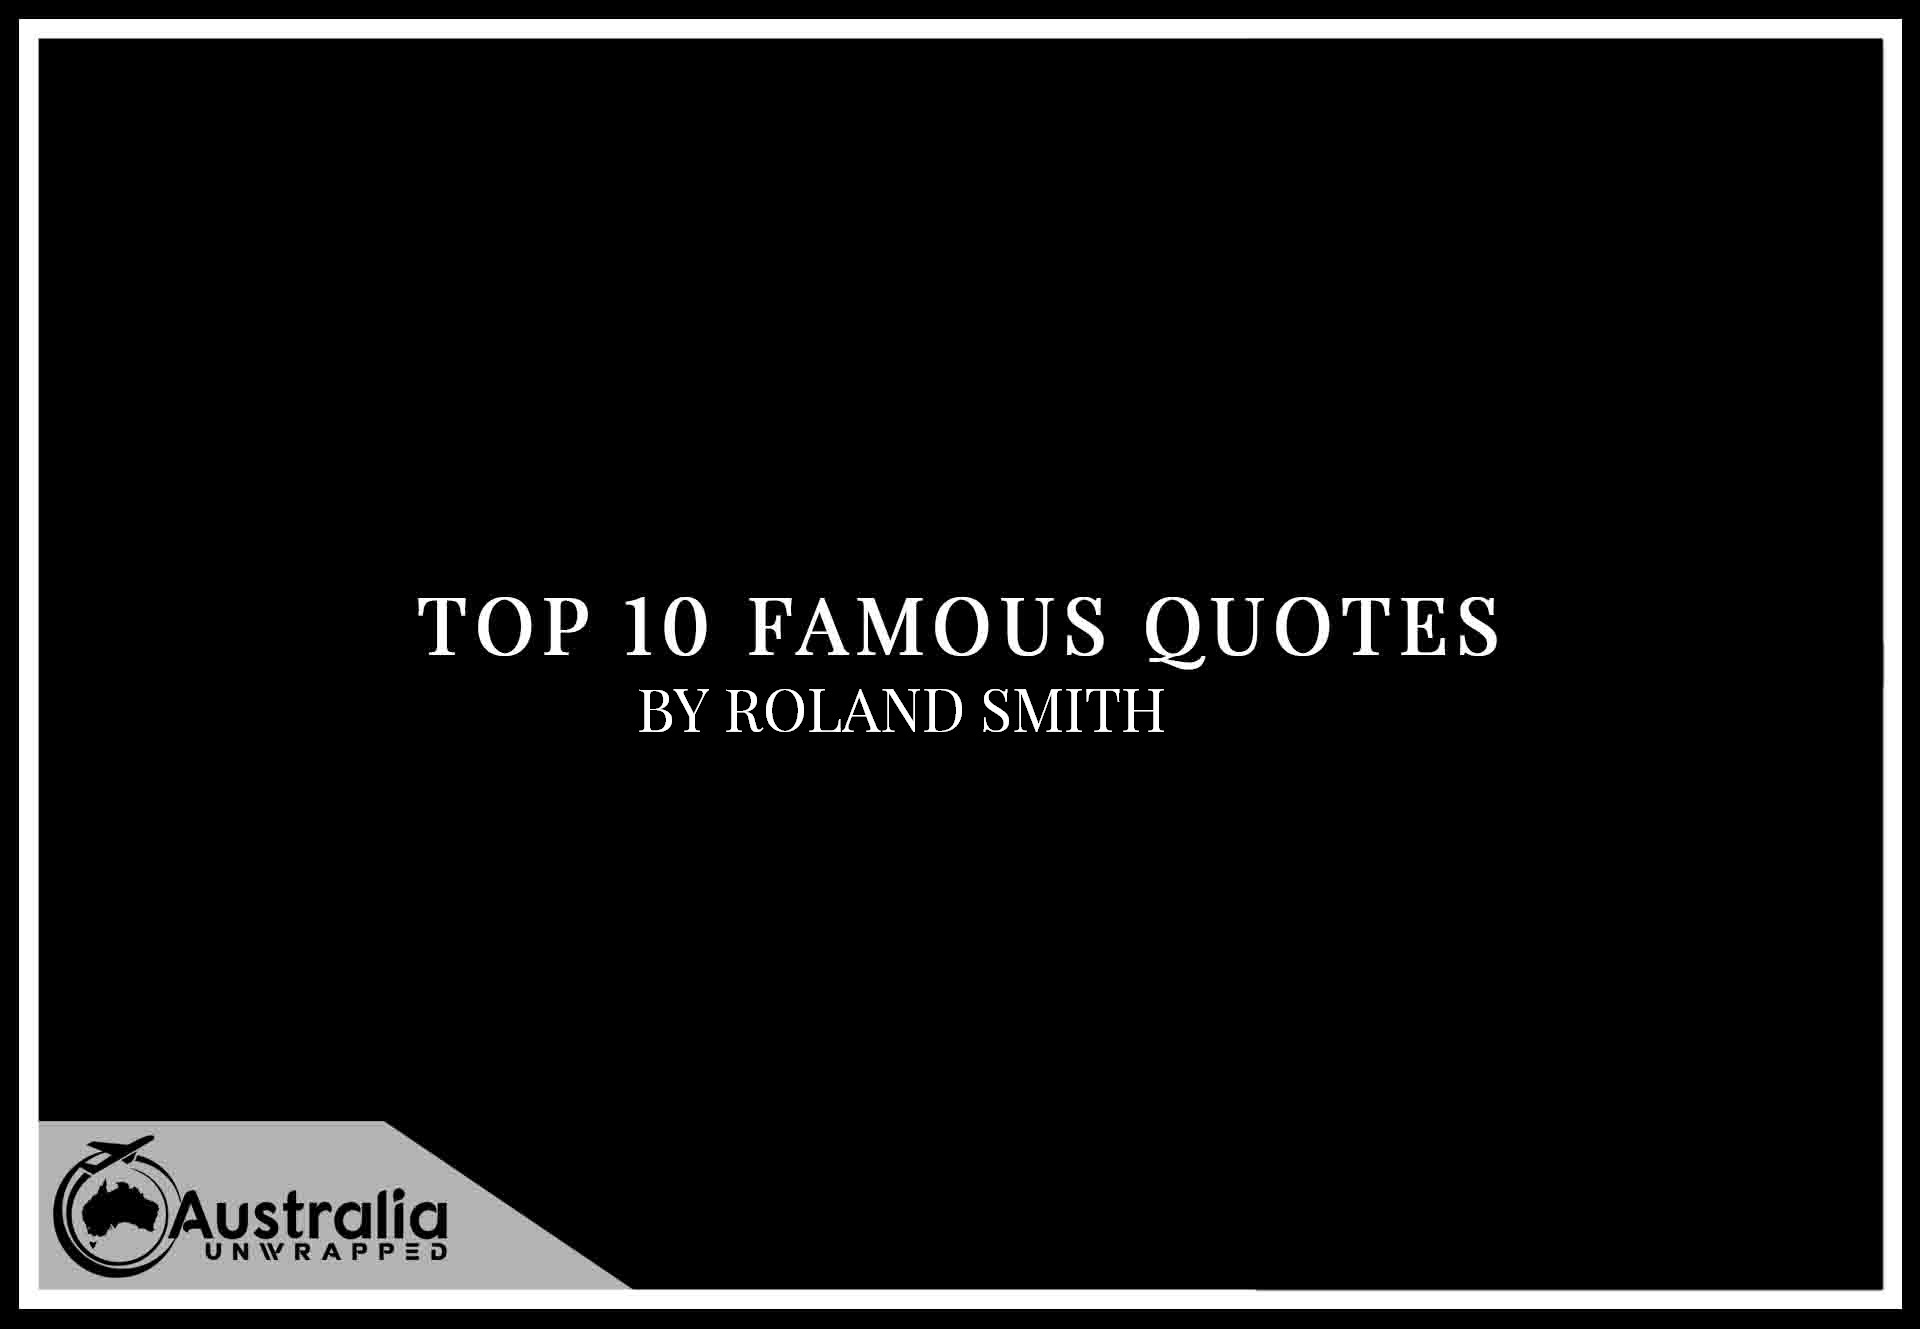 Top 10 Famous Quotes by Author Roland Smith